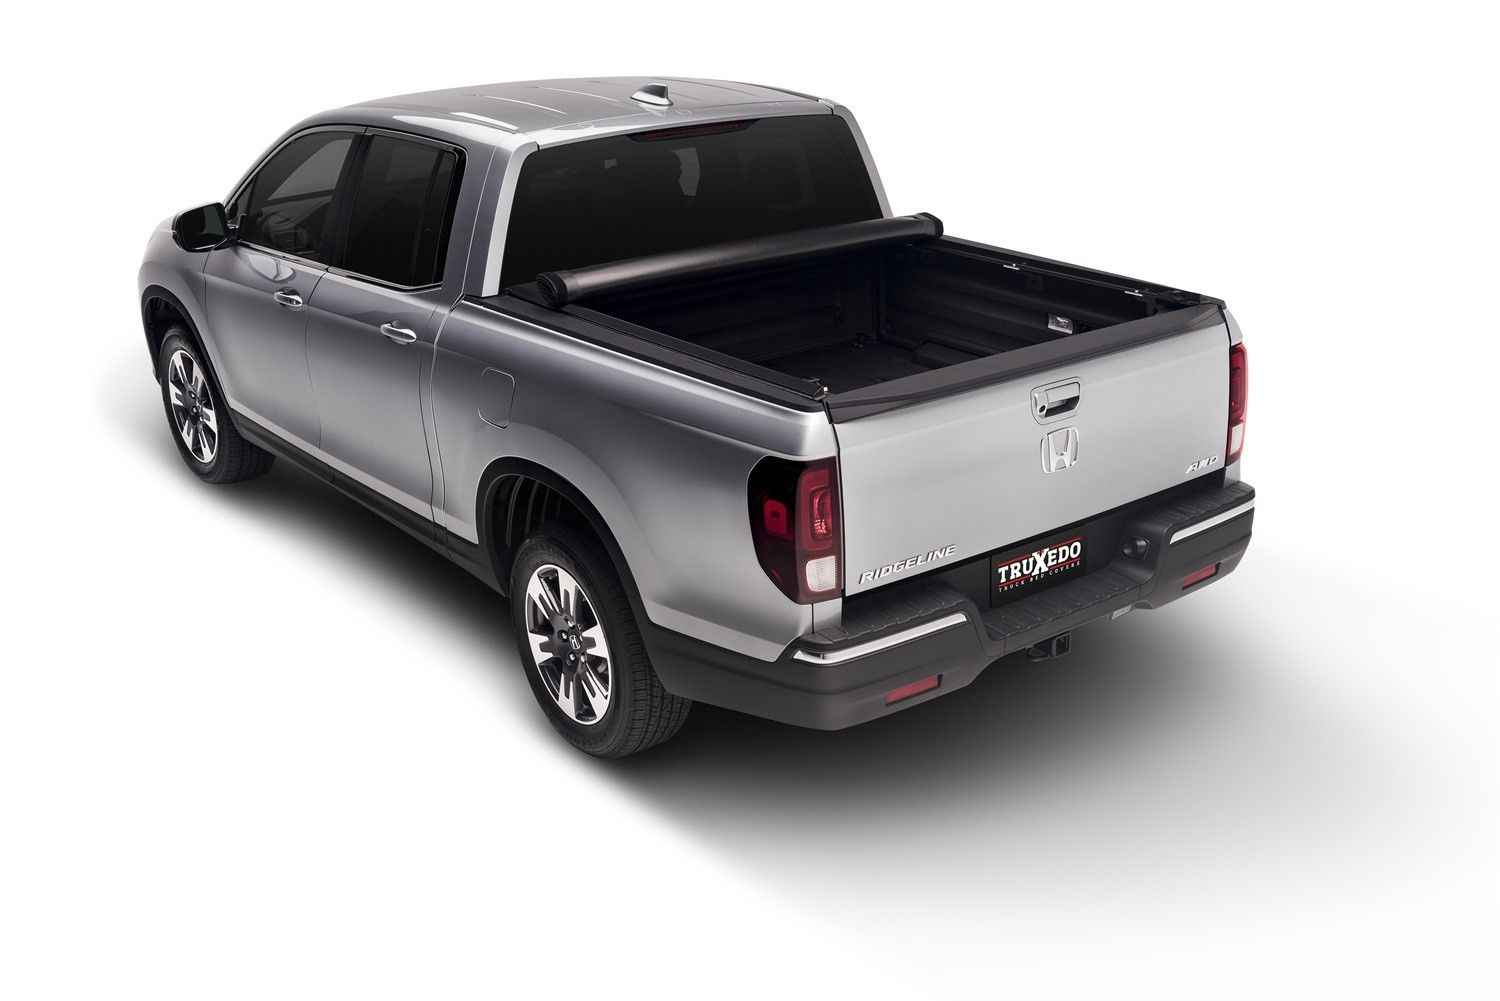 Pin by StreetsideAuto on Truxedo (With images) Tonneau